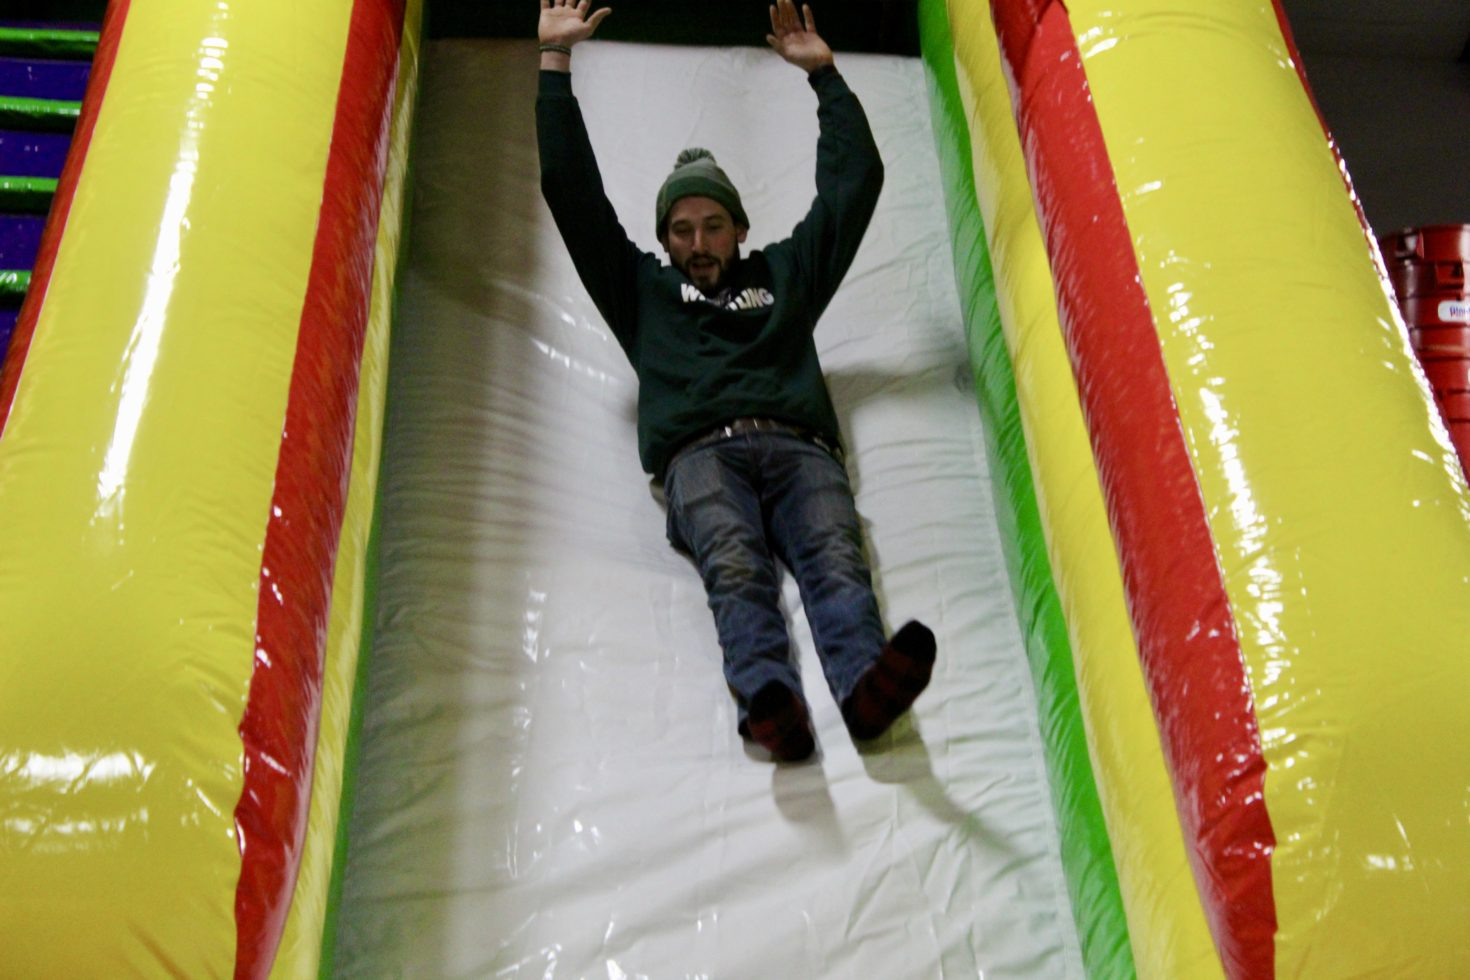 Guy going down inflatable slide rental